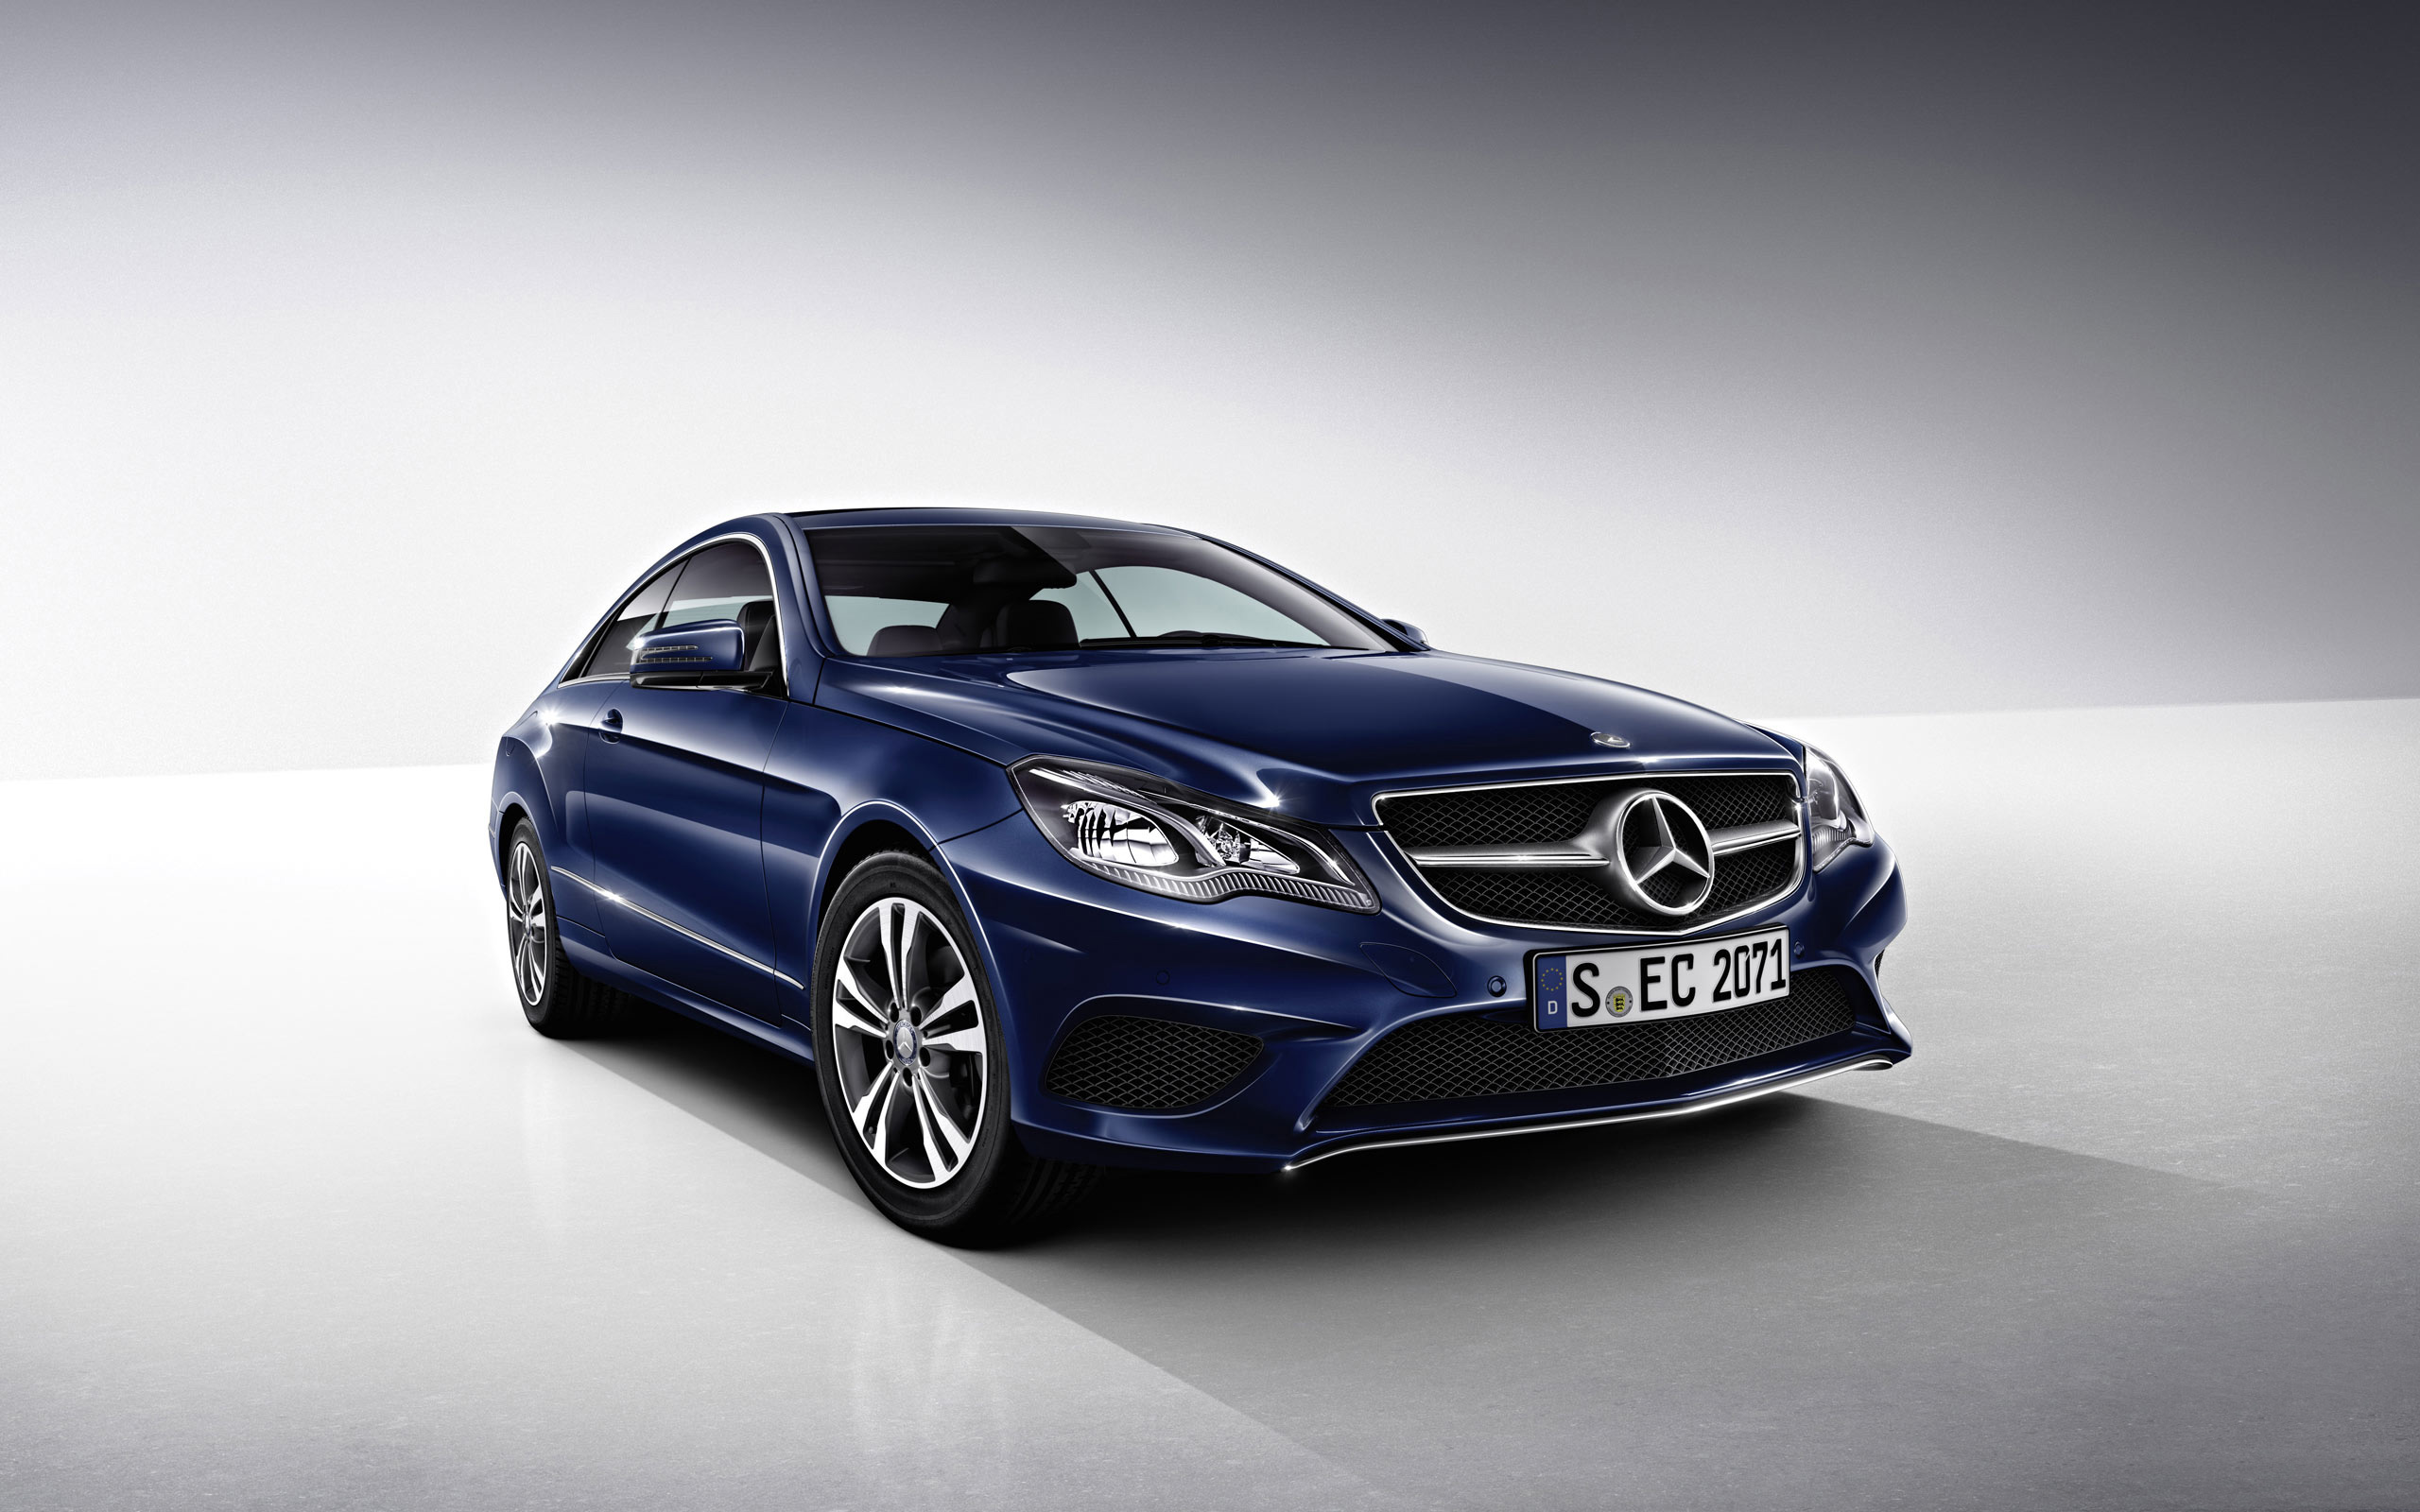 2014 mercedes benz e class coupe wallpaper hd car for Mercedes benz cars images